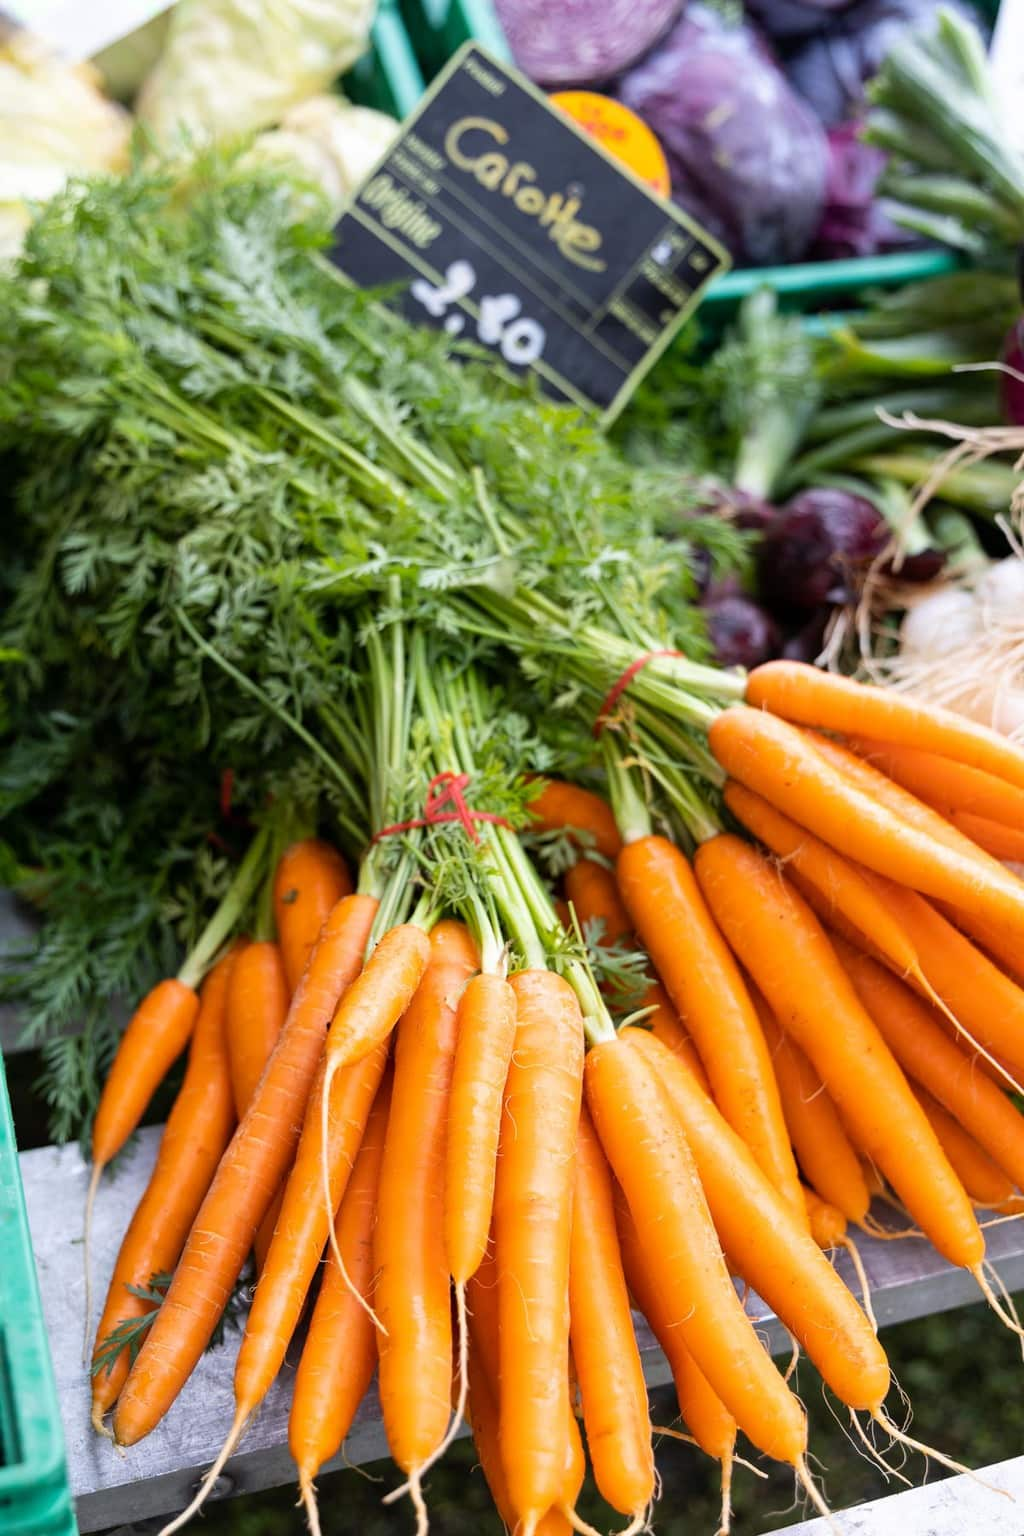 Vertical closeup photo of large bunches of carrots for sale at the artisan market in Les Houches, France.